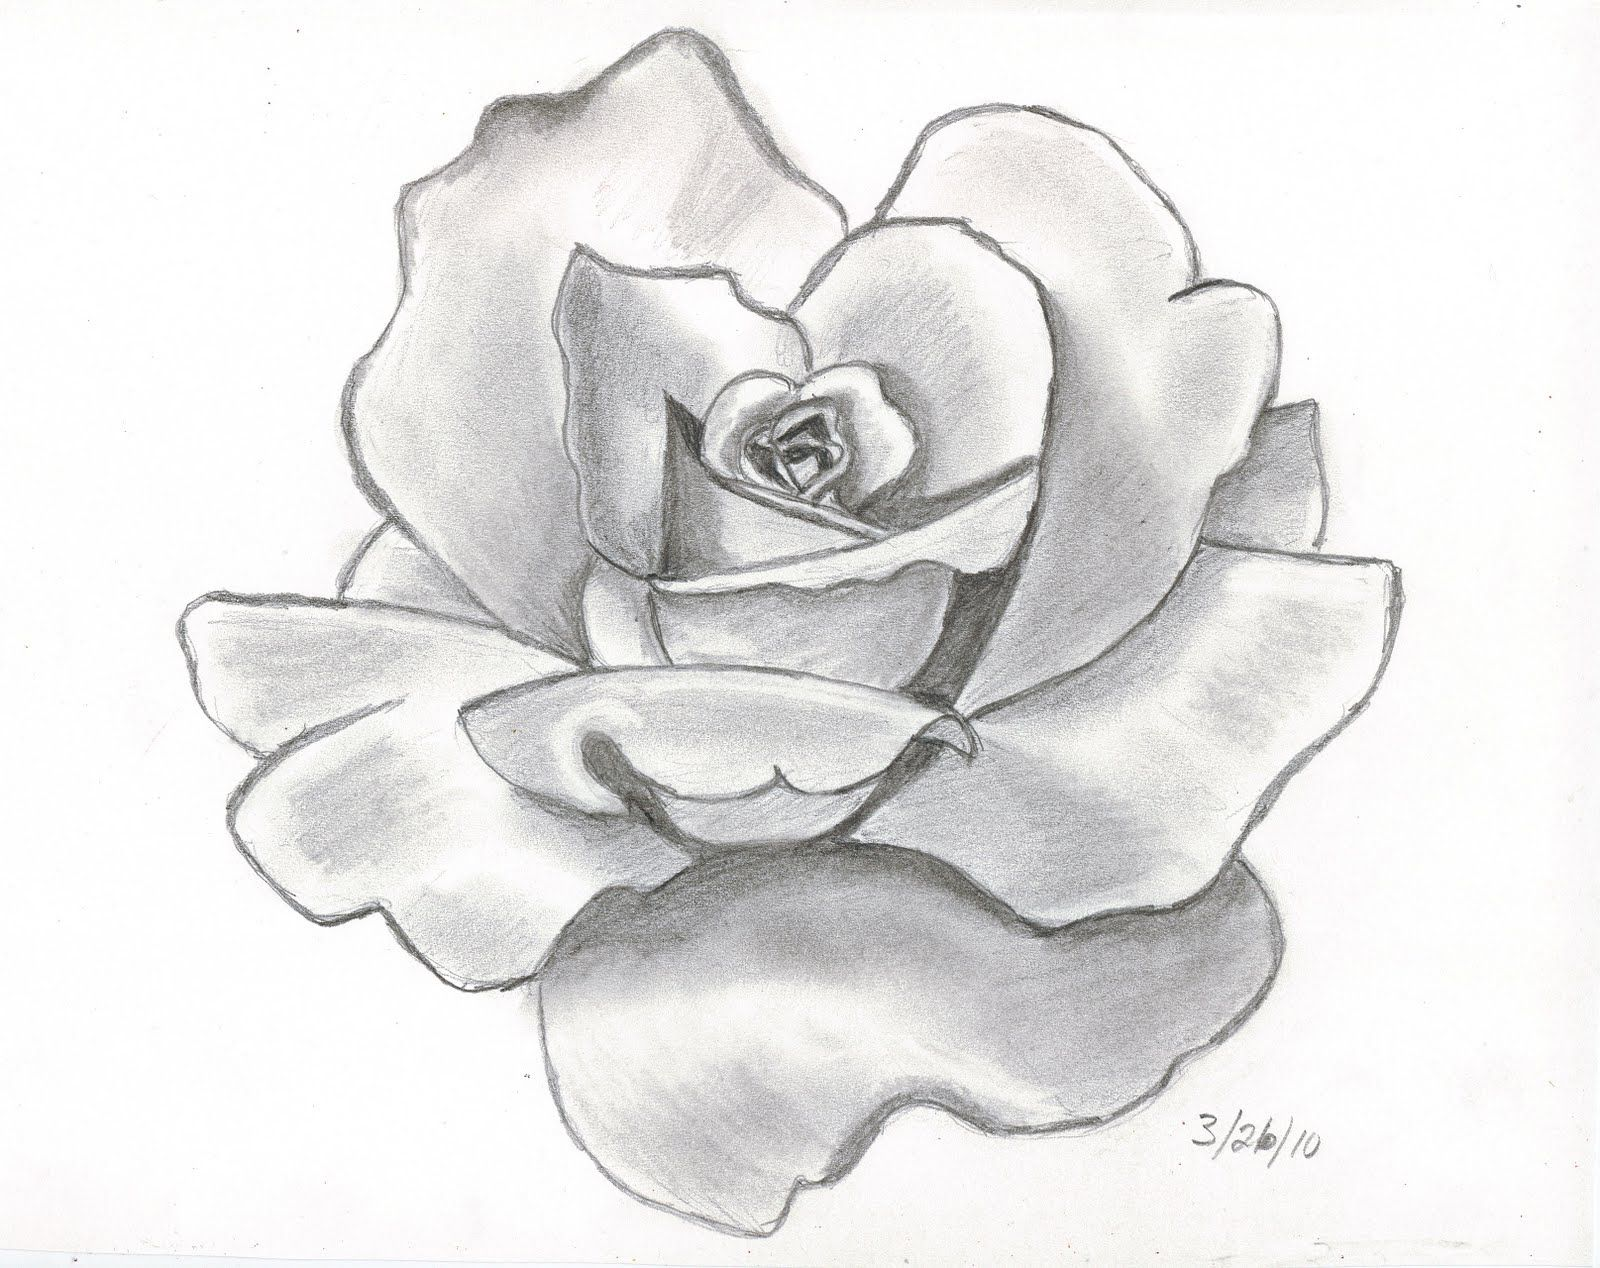 Pencil drawings this is my first attempt at doing a shaded pencil drawing of a rose i